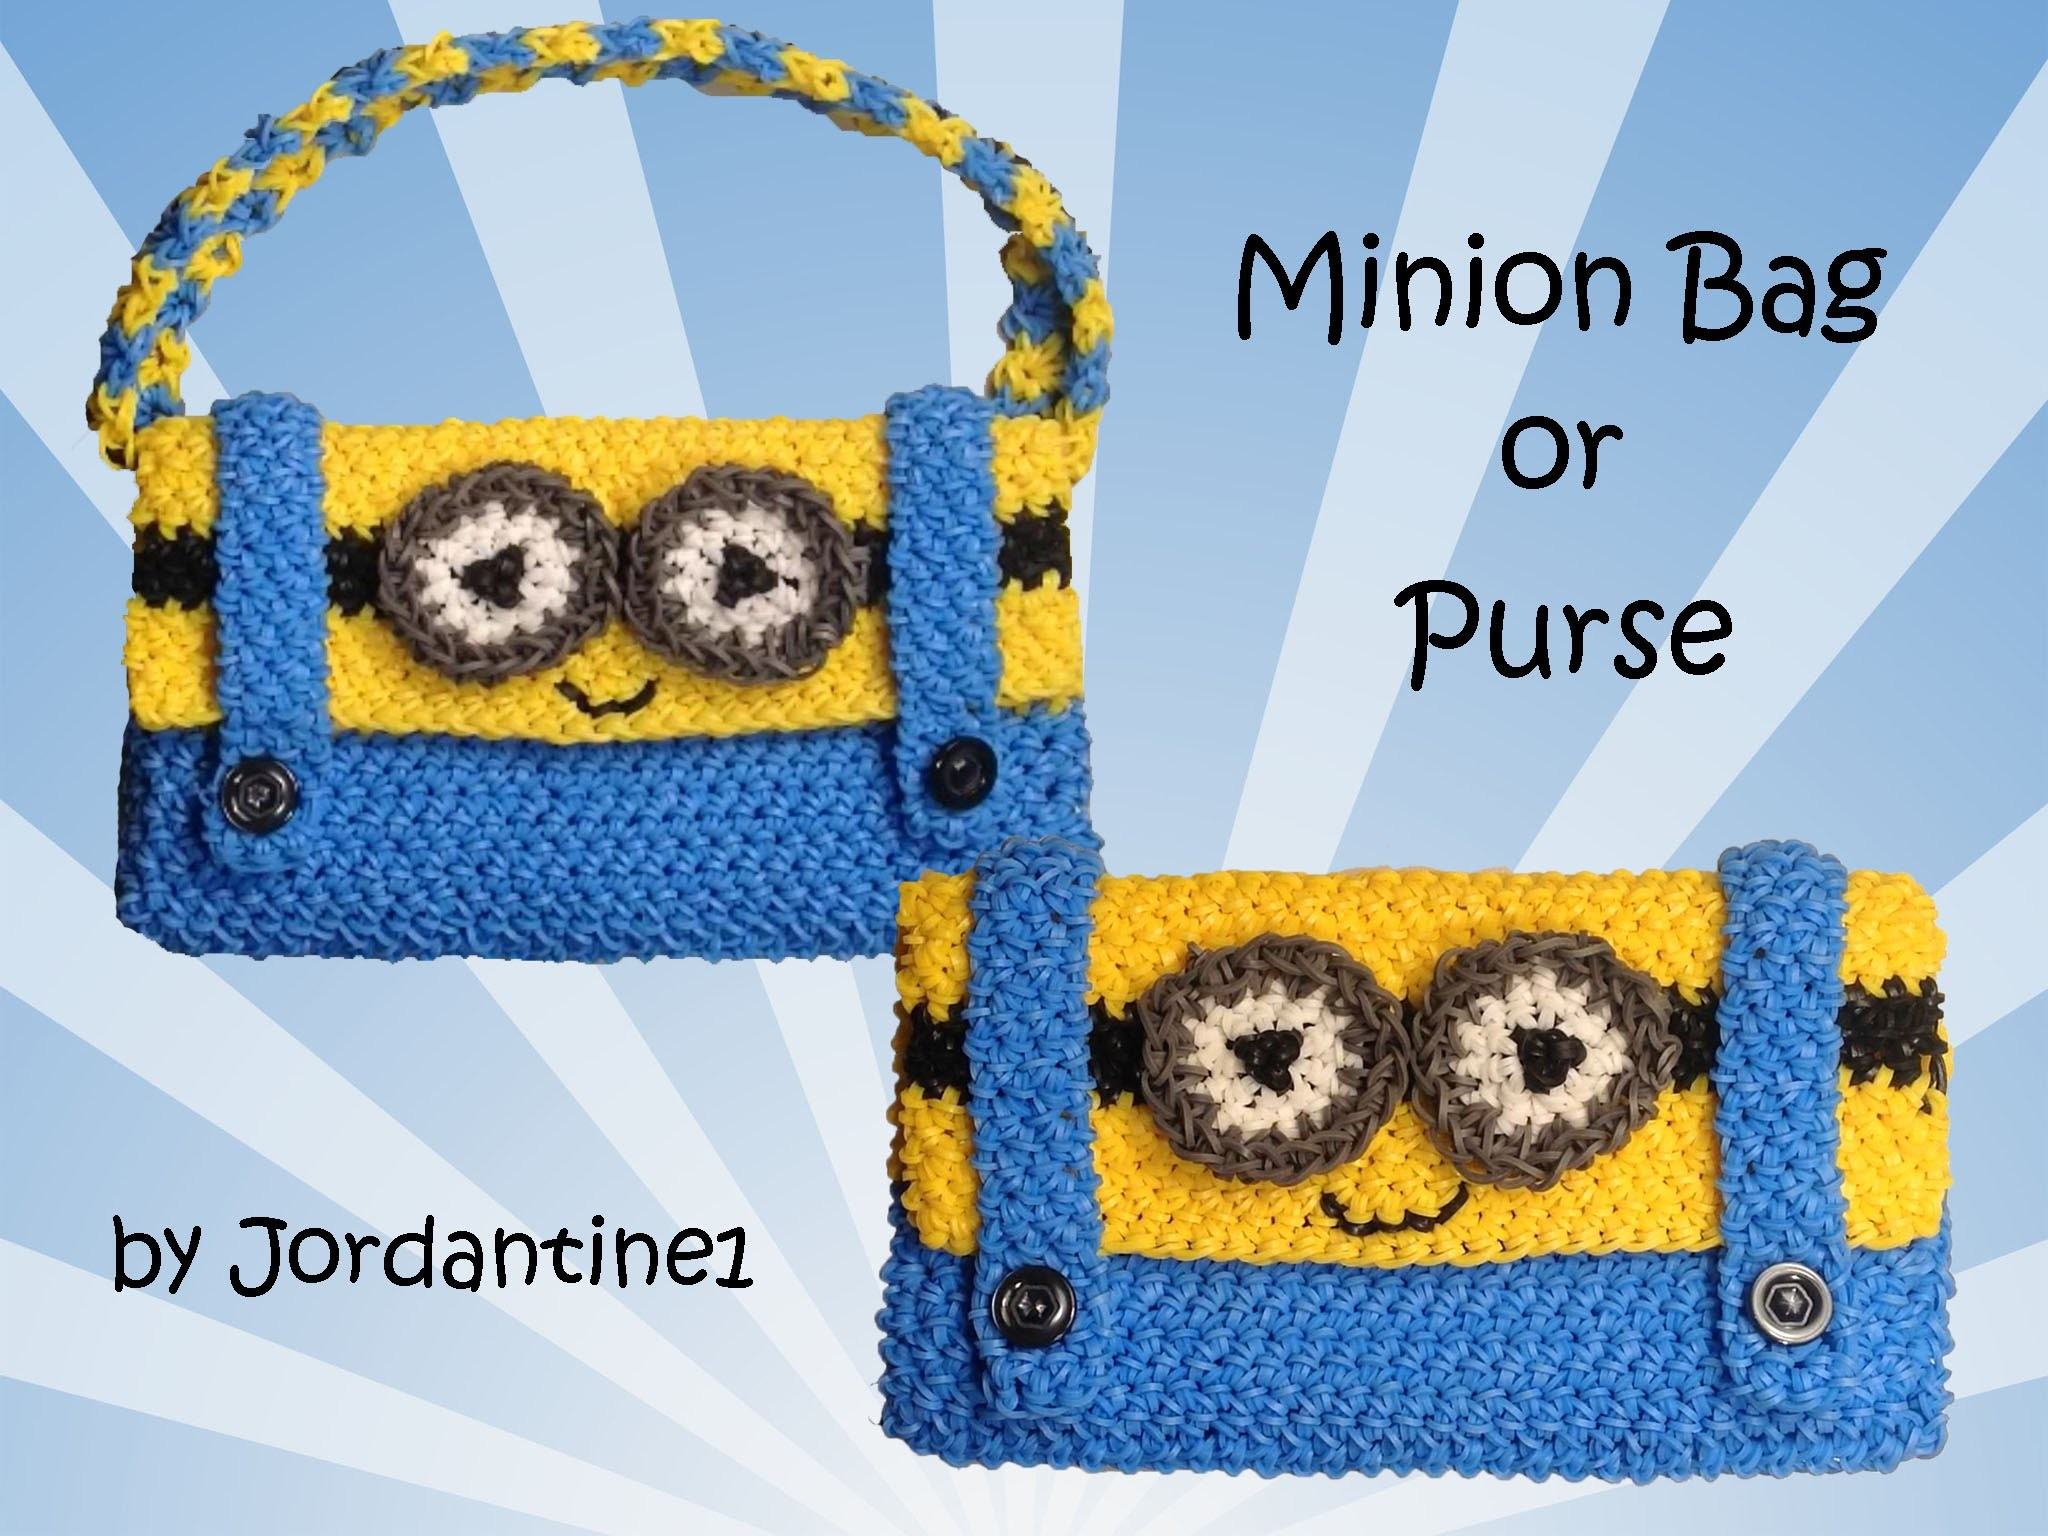 New Minion Bag. Purse. Pencil Case  - Loomigurumi. Amigurumi - Rainbow Loom - Hook Only - Crochet